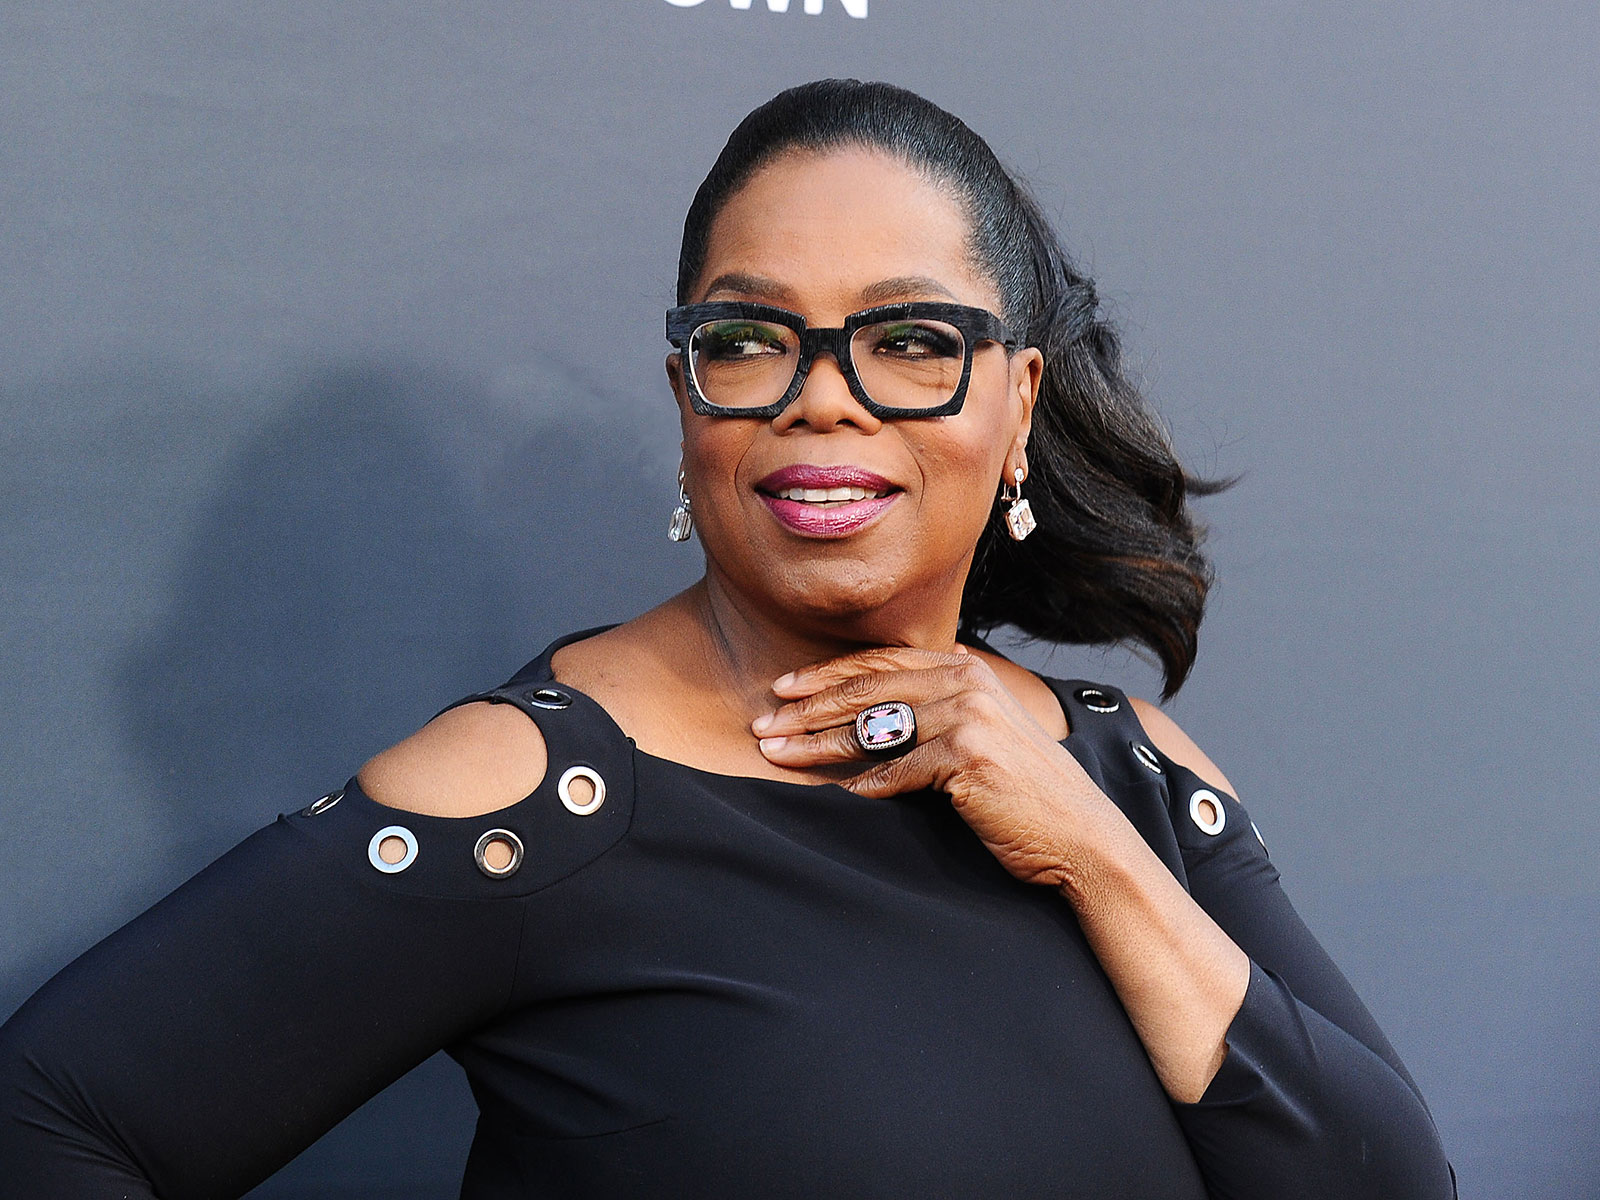 oprah's line of ready to eat meals comes in october